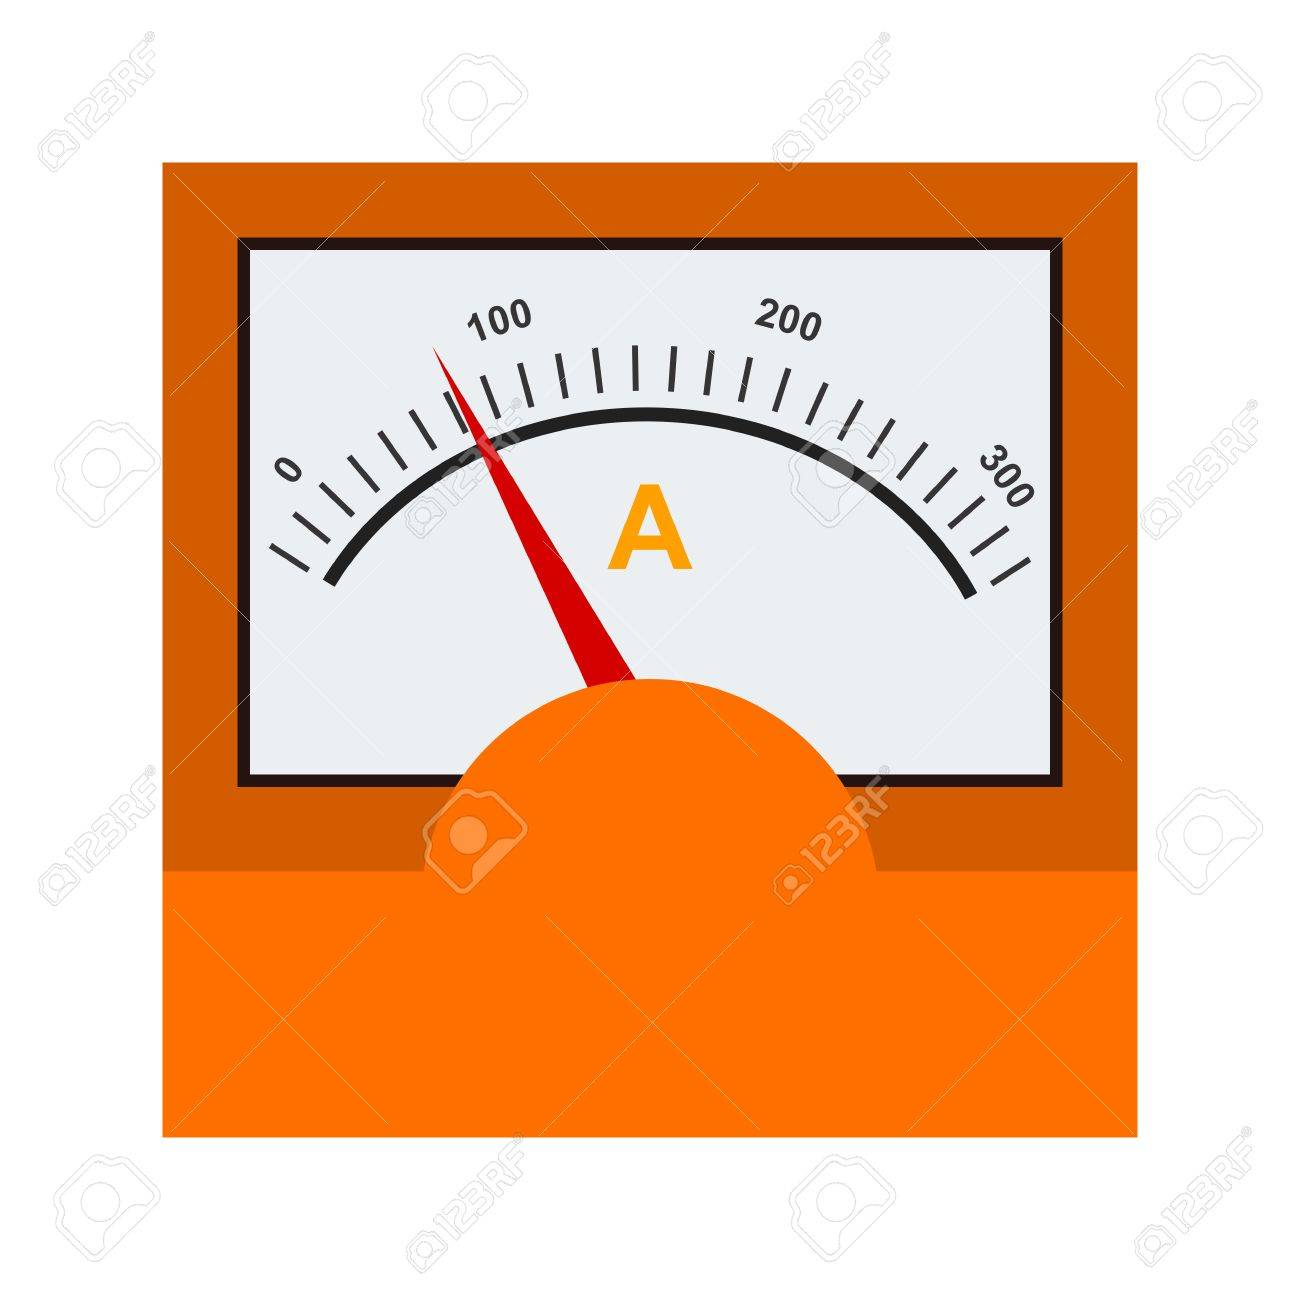 Ammeter Meter Electrician Icon Vector Image Can Also Be Used Amp Circuit For Electric Circuits